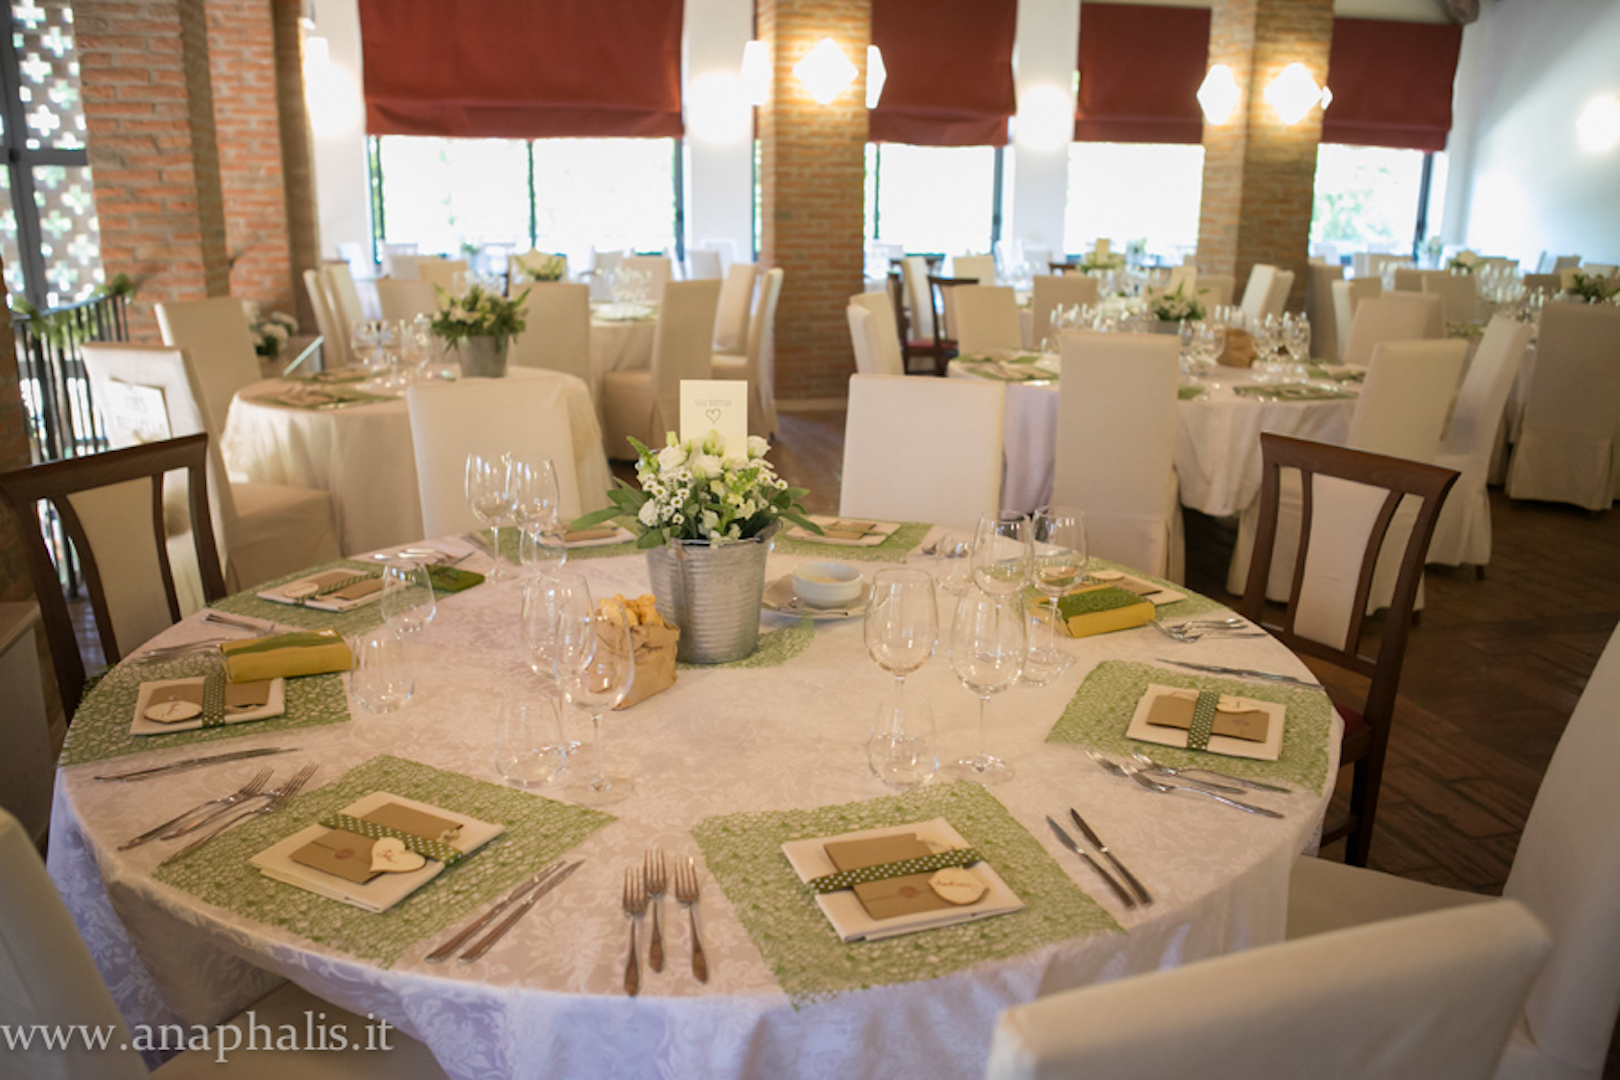 Matrimonio Country Chic Hotel : Matrimonio country chic in bianco e verde fioreria